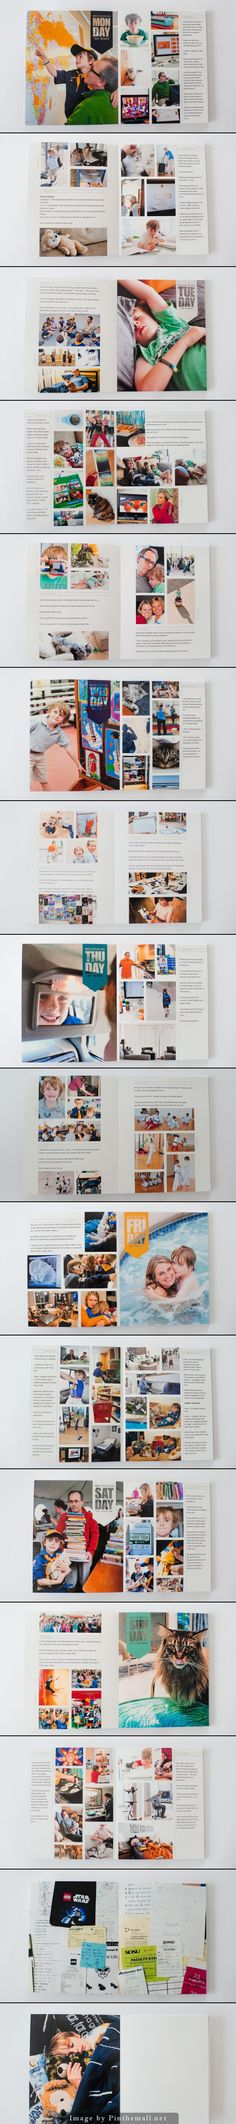 Week In the Life Photo Book